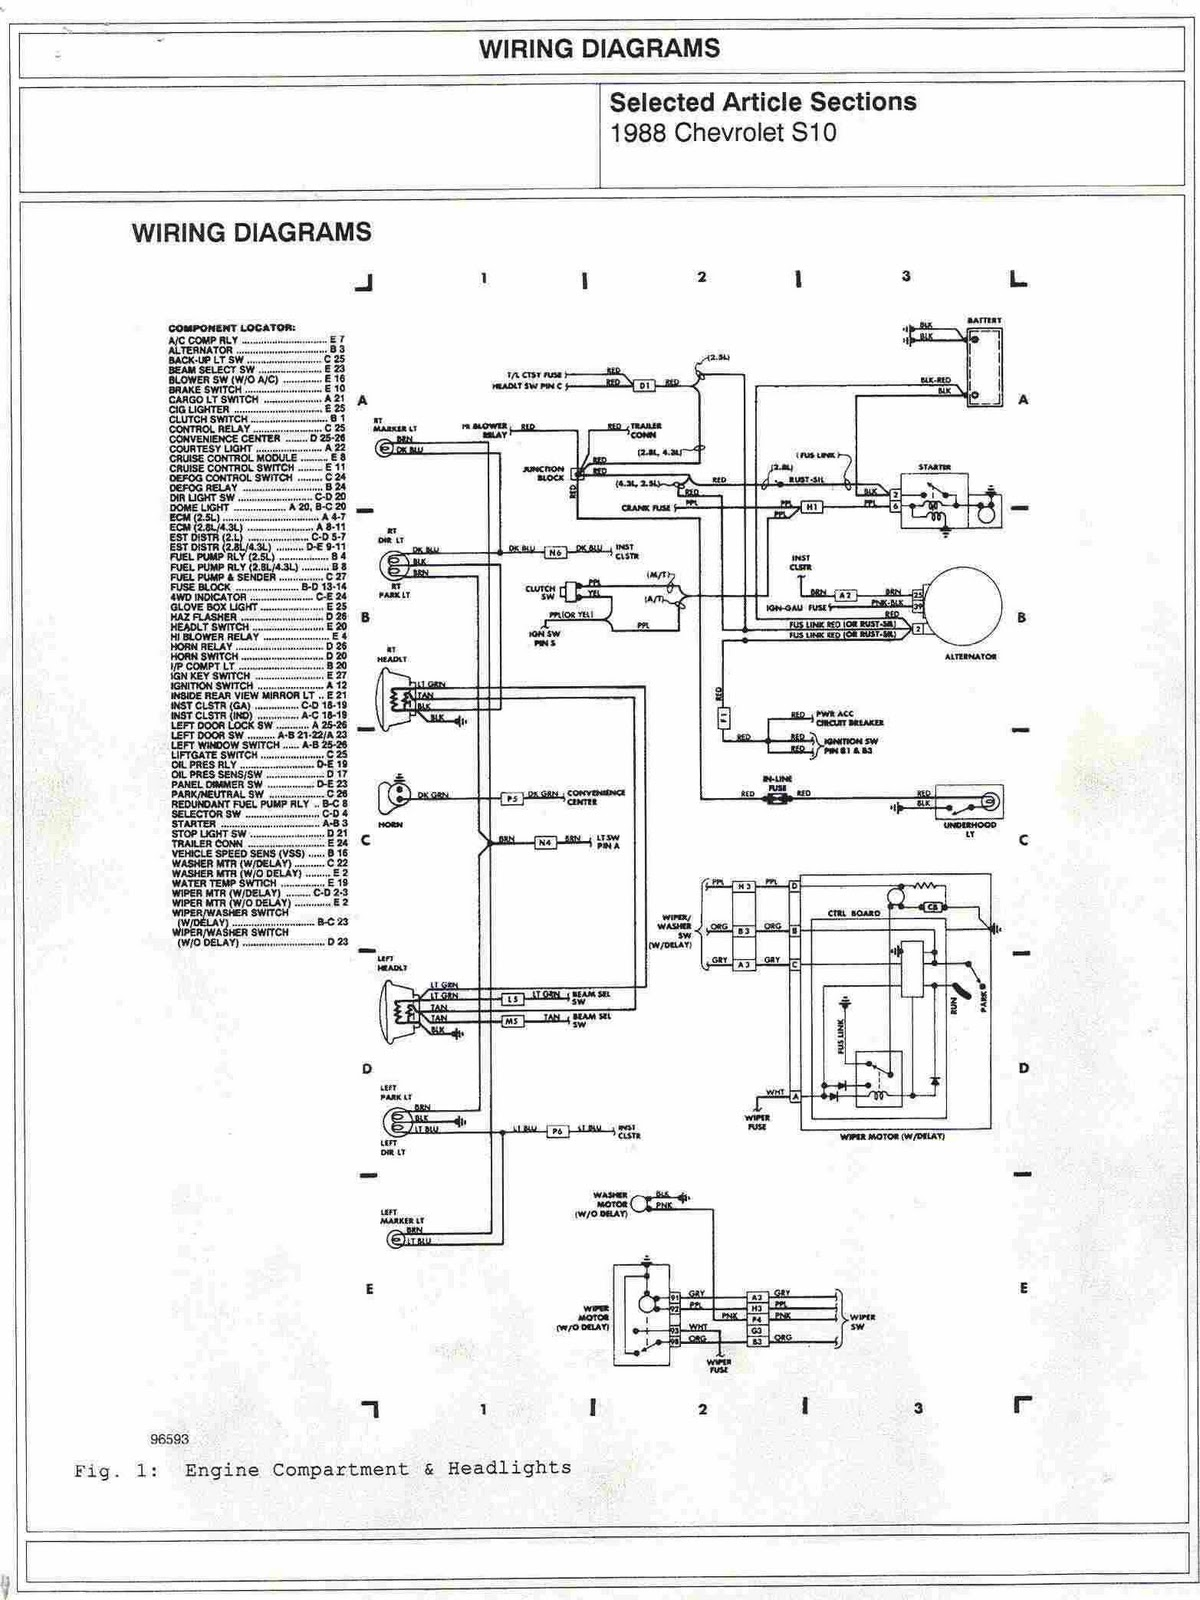 88 Ford F 150 Wiring Diagram 03 F150 1956 Wire Truck Rotax 912 Uls Diagrams On